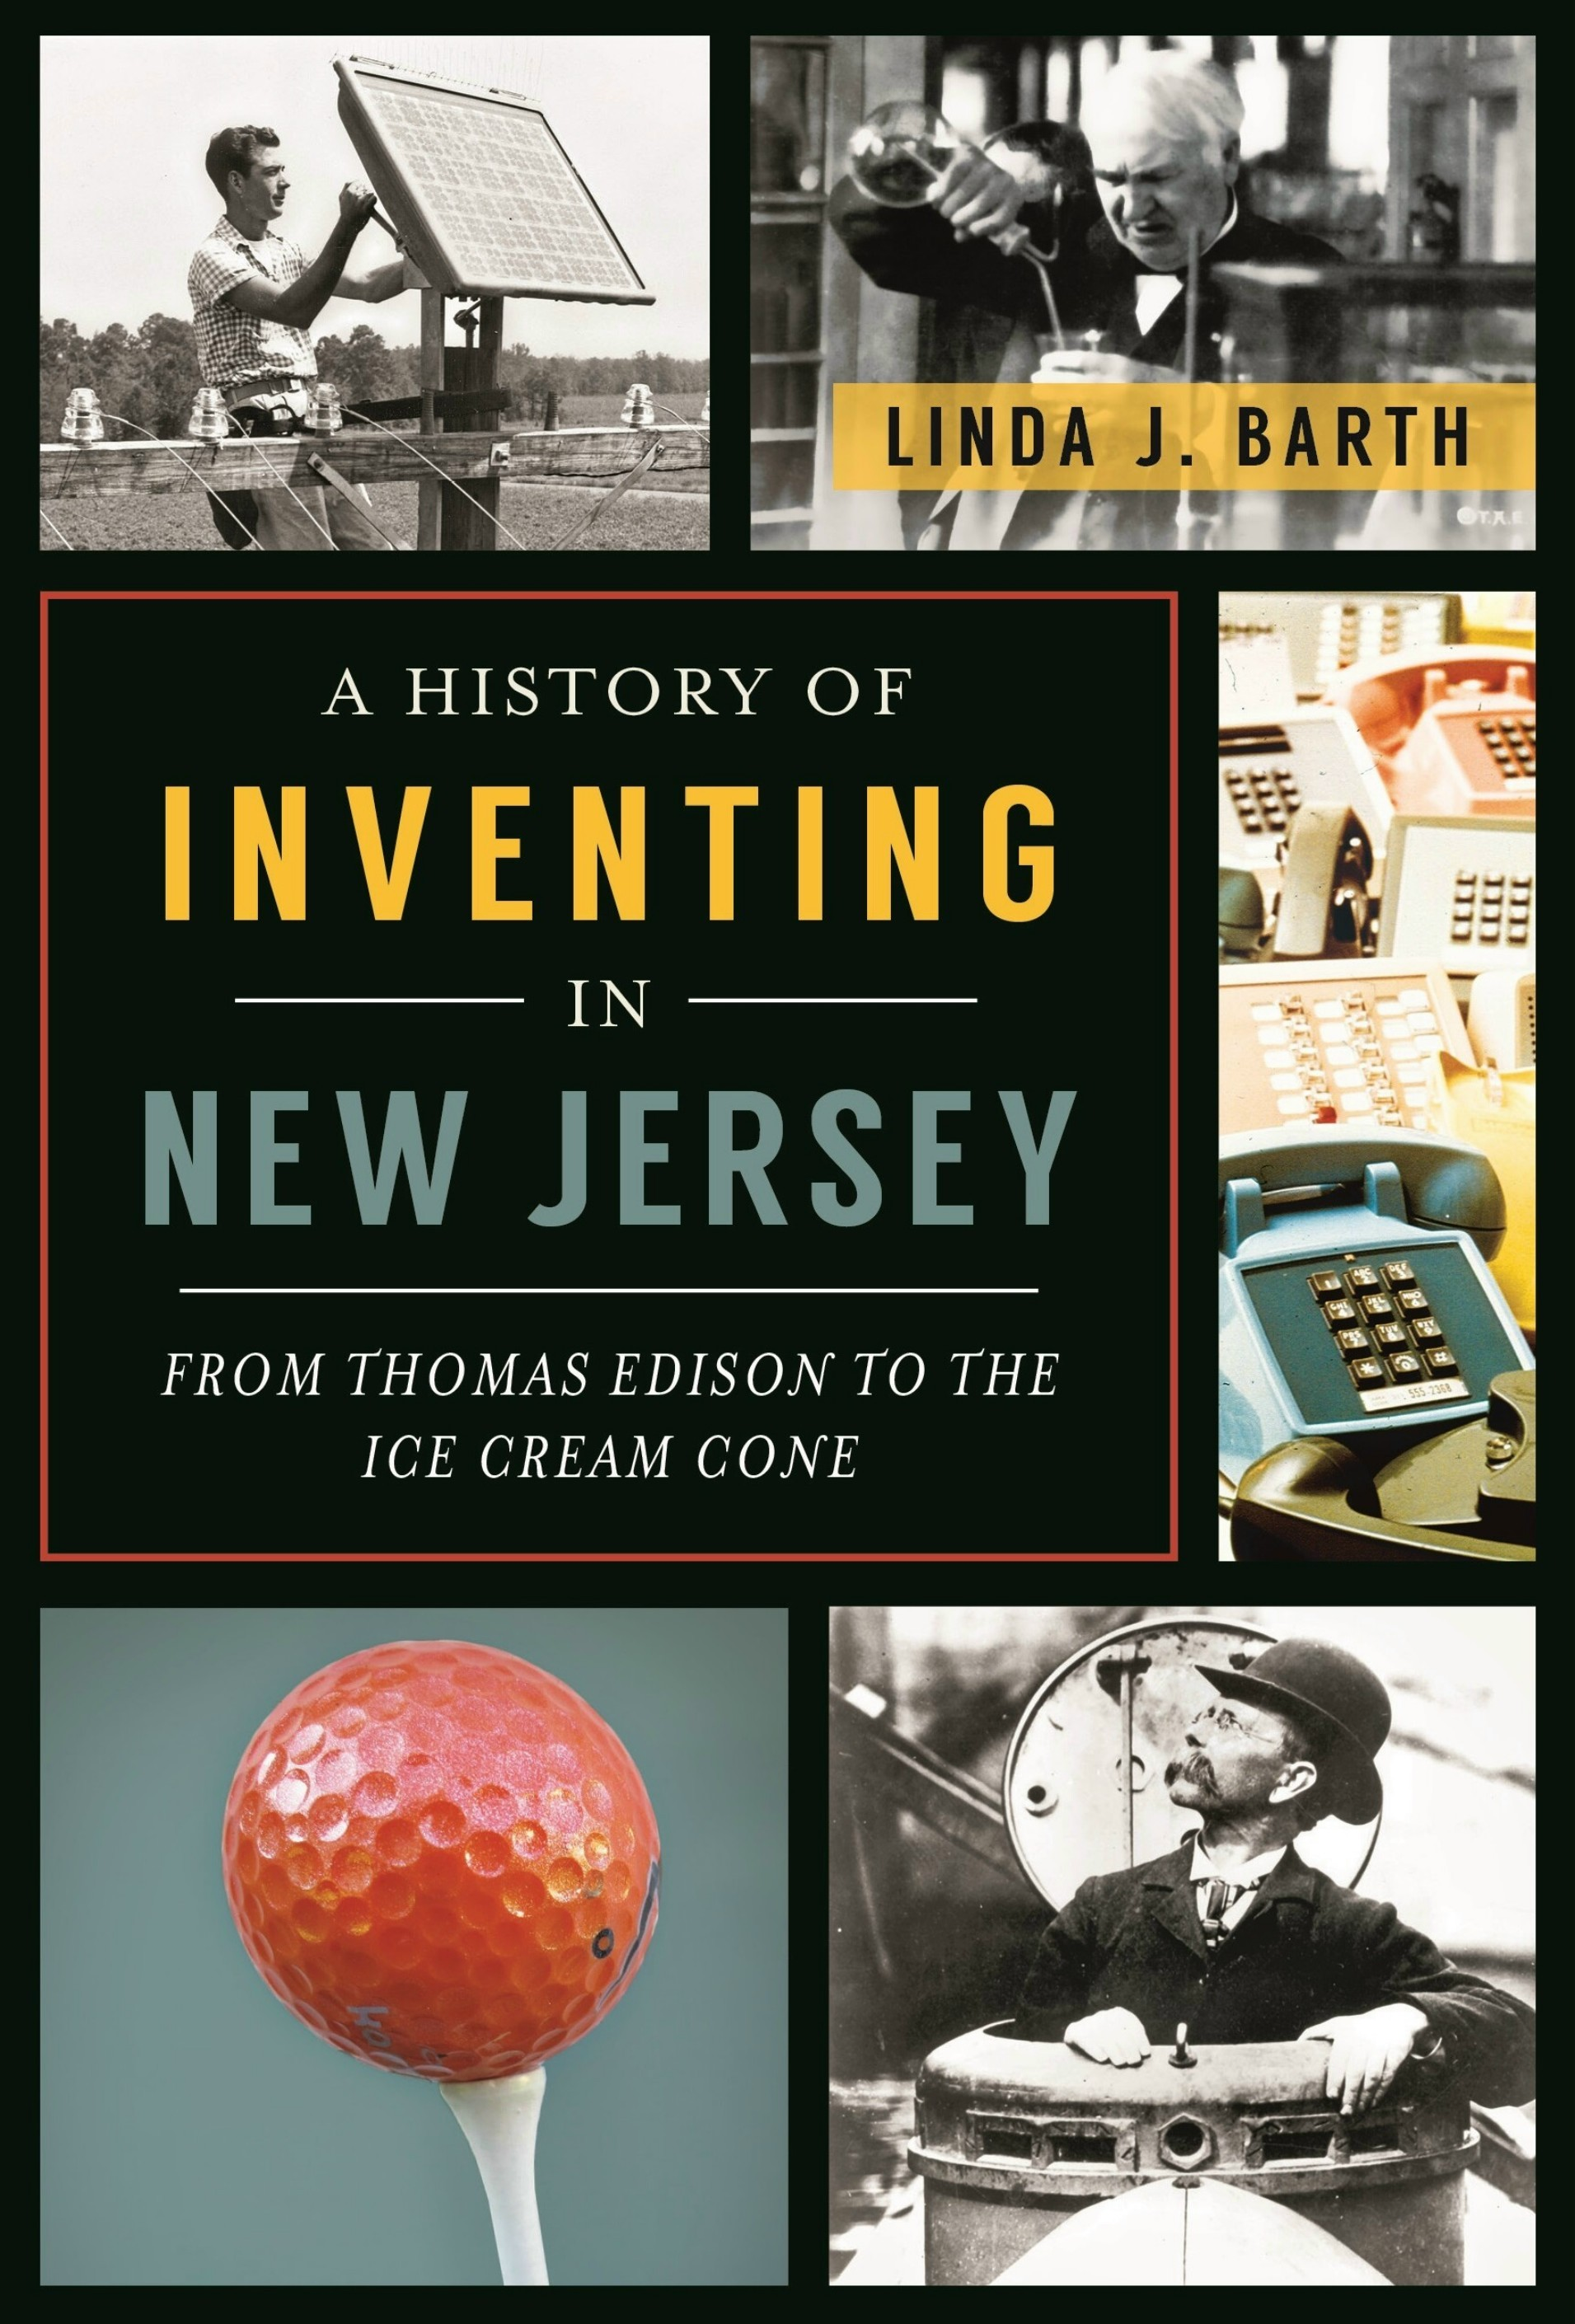 0ee4503a5e93376f6e58_History_of_Inventing_in_NJ_front_cover_courtesy_Linda_Barth.jpg